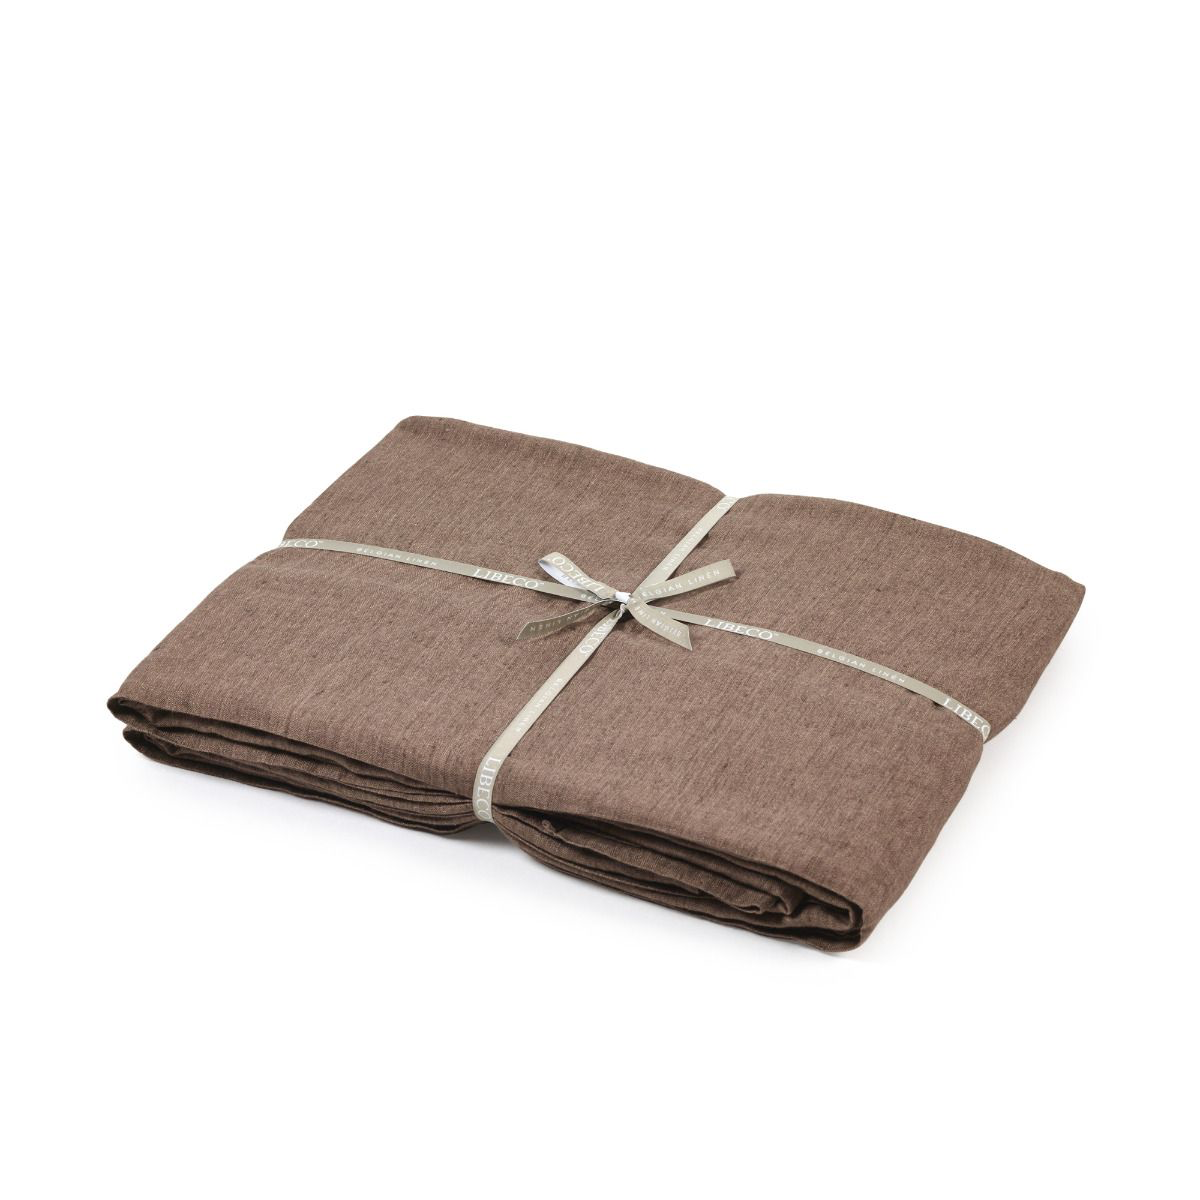 nottinghill flat & fitted sheets, libeco, sheets, - adorn.house